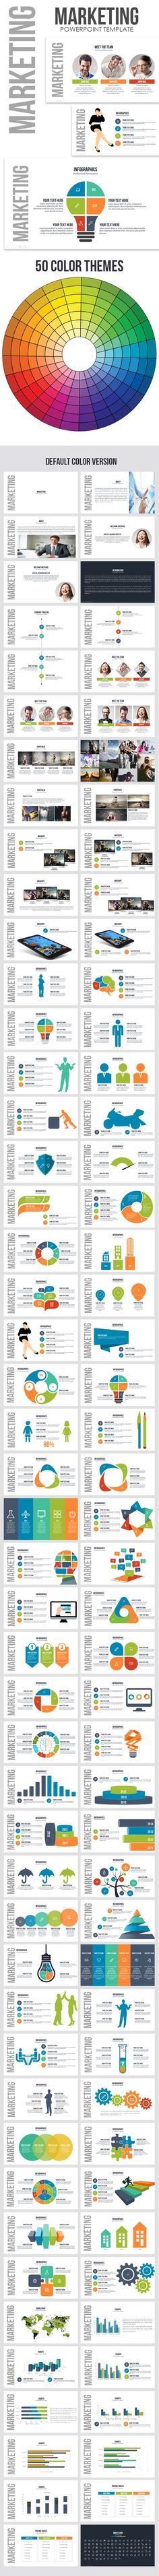 Minti multipurpose powerpoint presentation template presentation marketing powerpoint presentation template alramifo Image collections